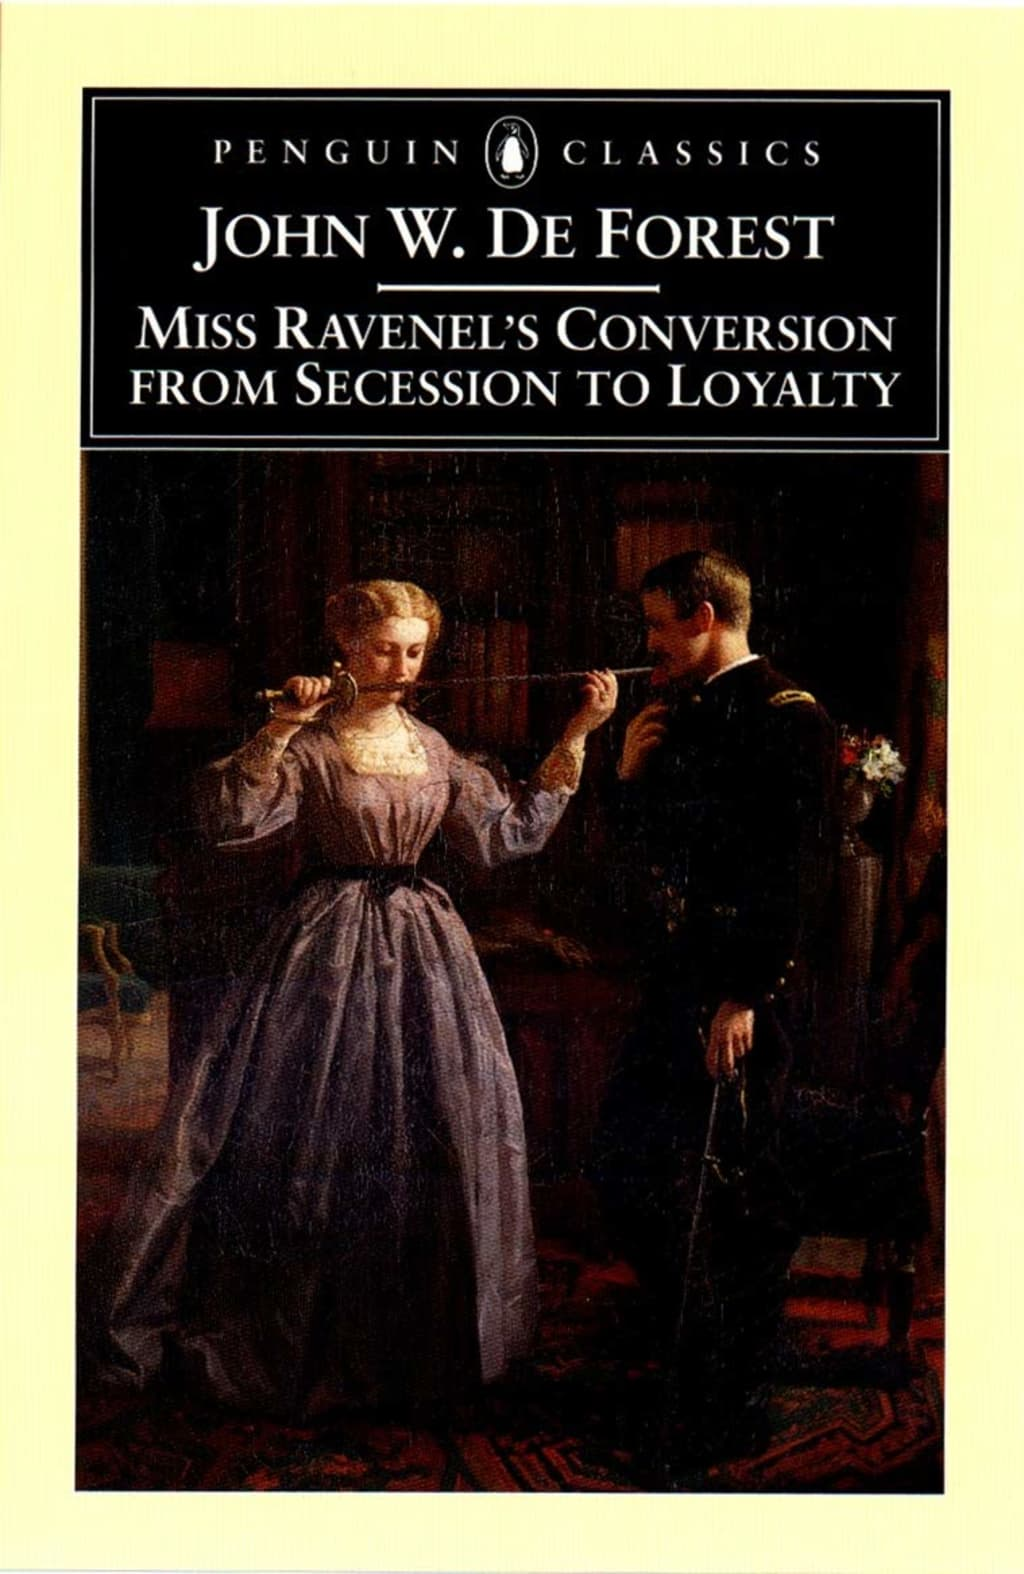 """Miss Ravenel's Conversion from Secession to Loyalty"" by John W. De Forest"